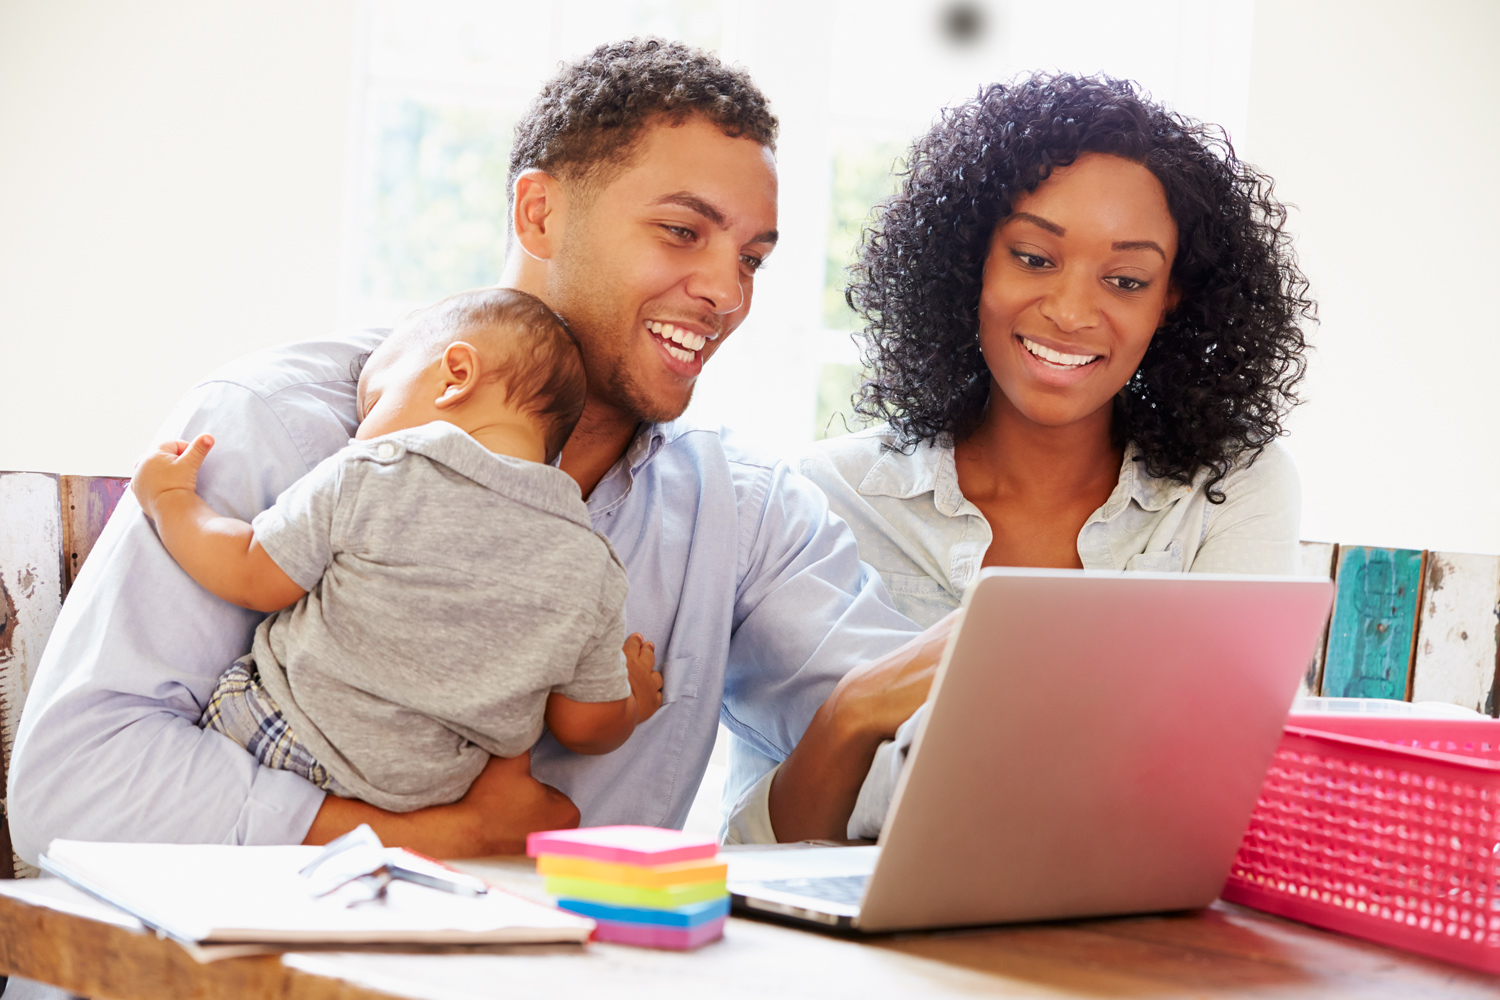 1-Parents-With-Baby-Working-In-Office-At-Home.jpg